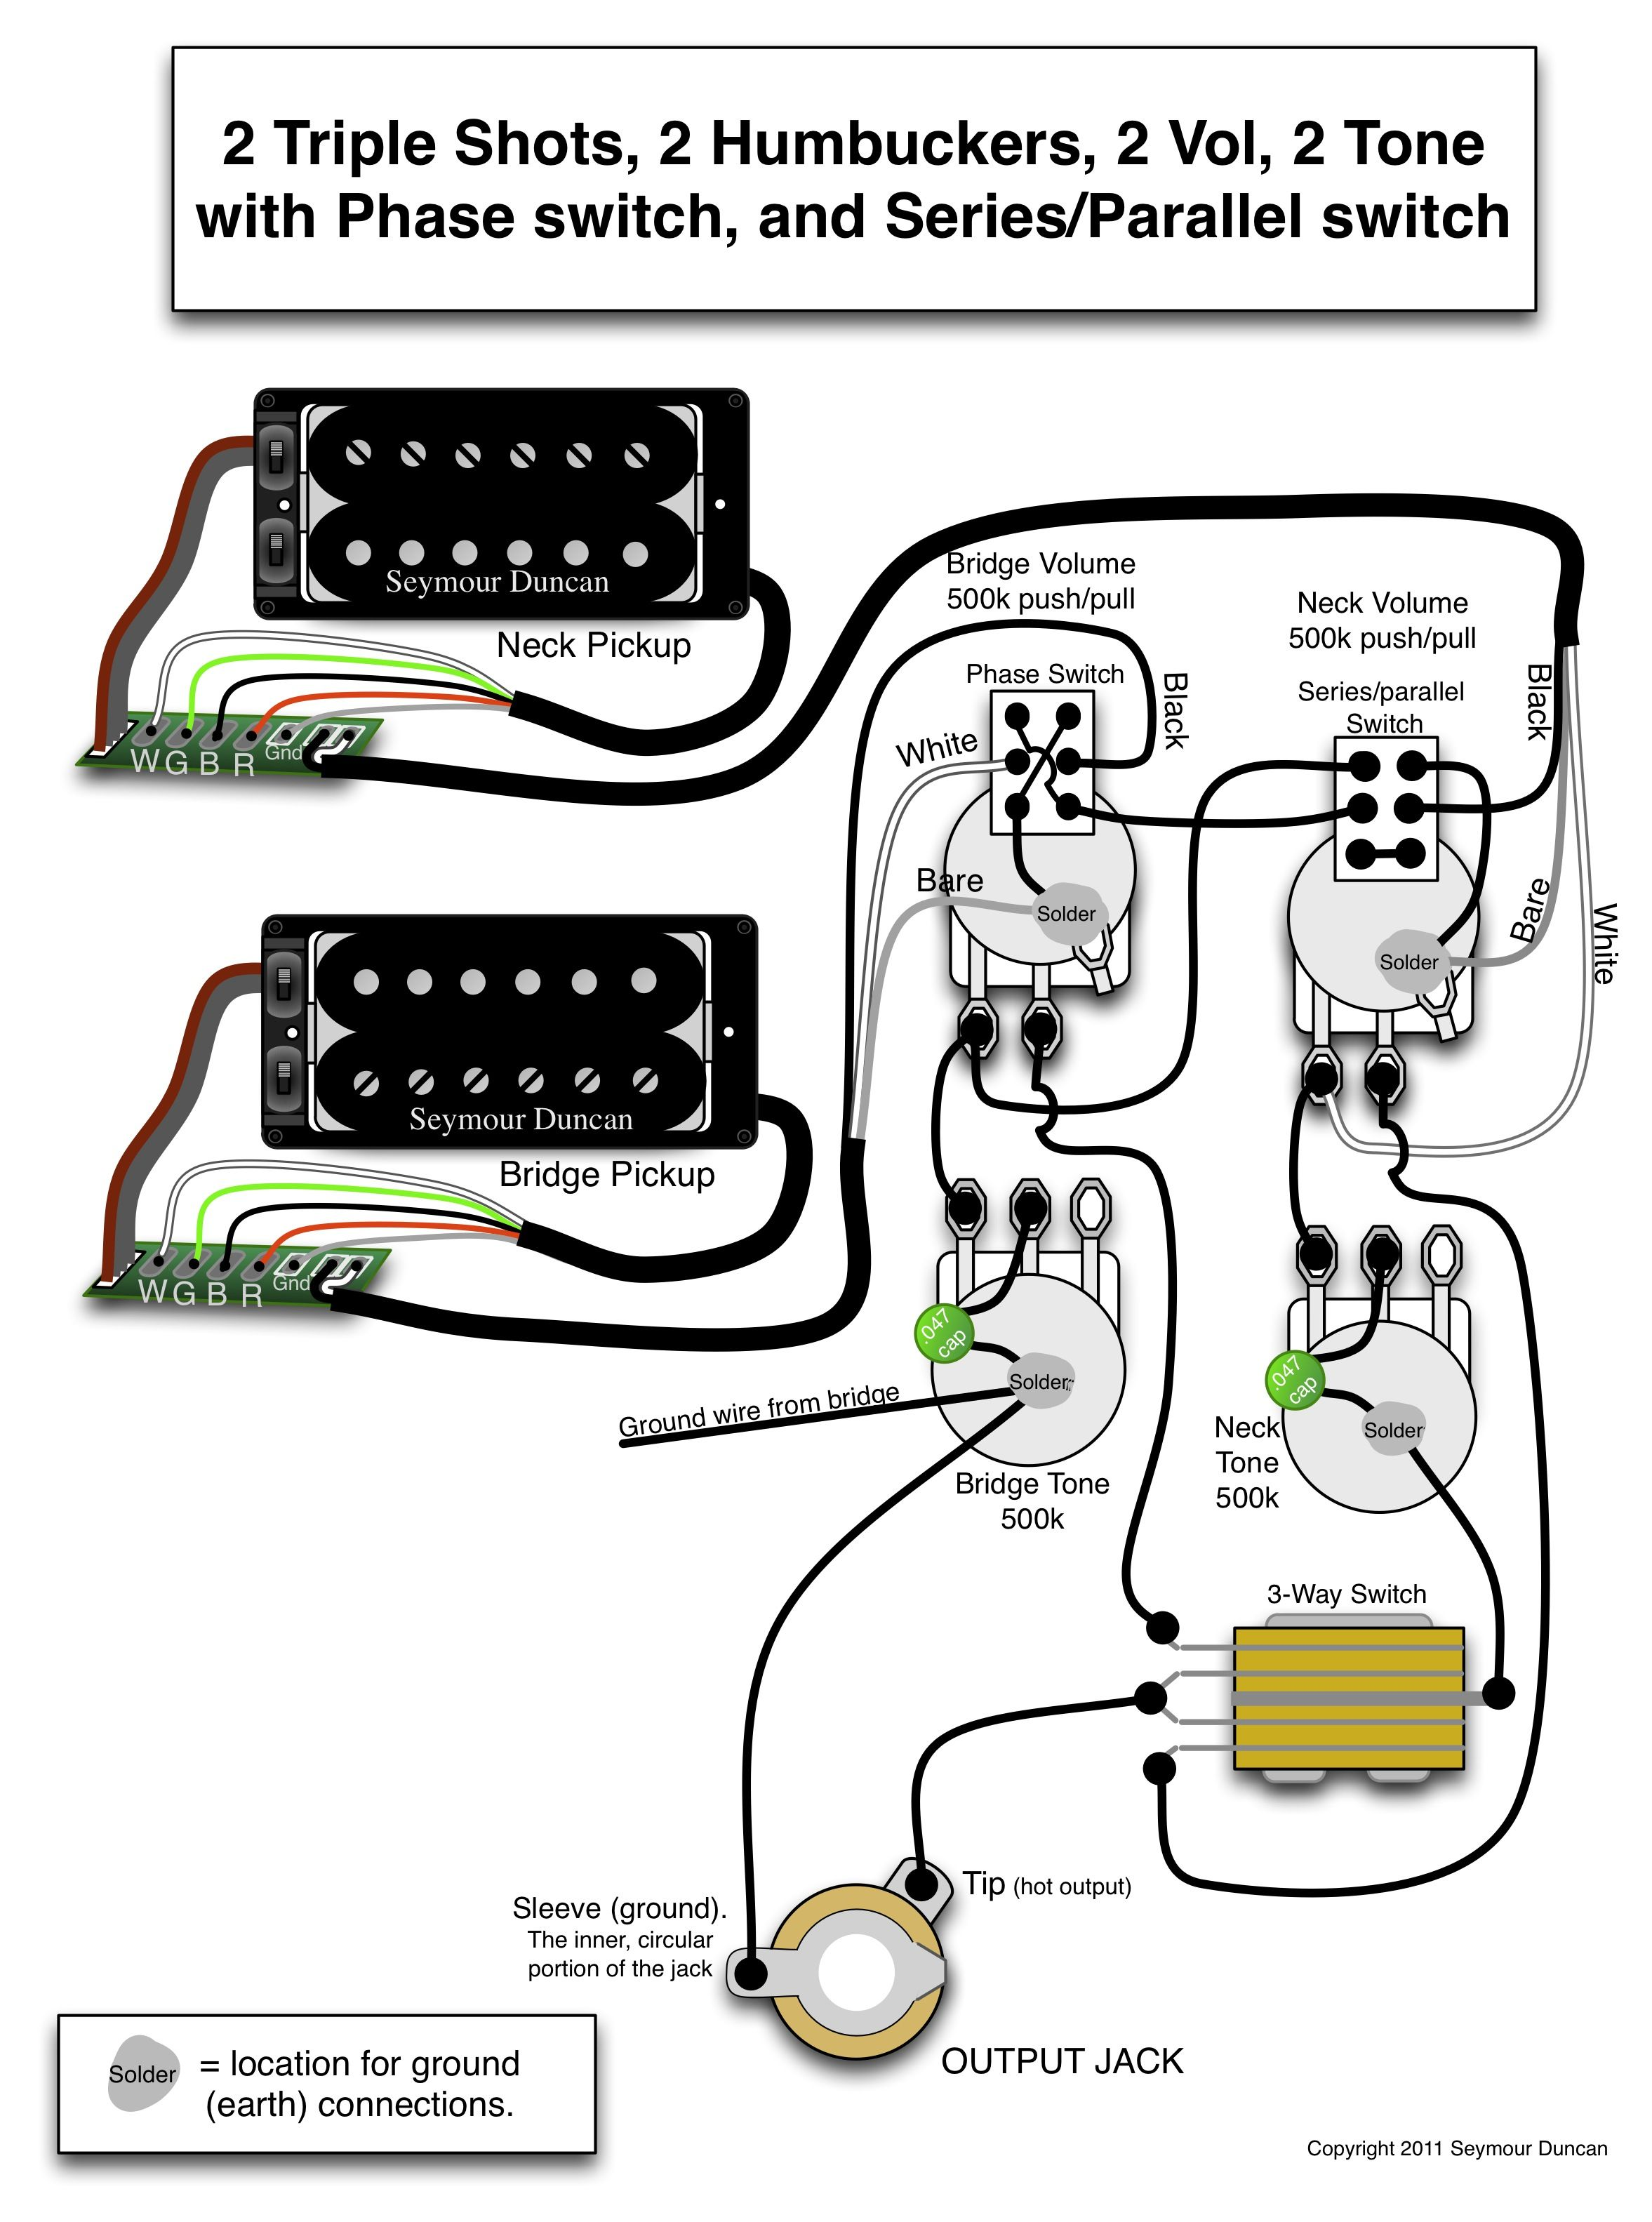 Seymour Duncan wiring diagram - 2 Triple Shots, 2 Humbuckers, 2 Vol, 2 Tone  (one with Phase switch and the other with Series/Parallel switch)